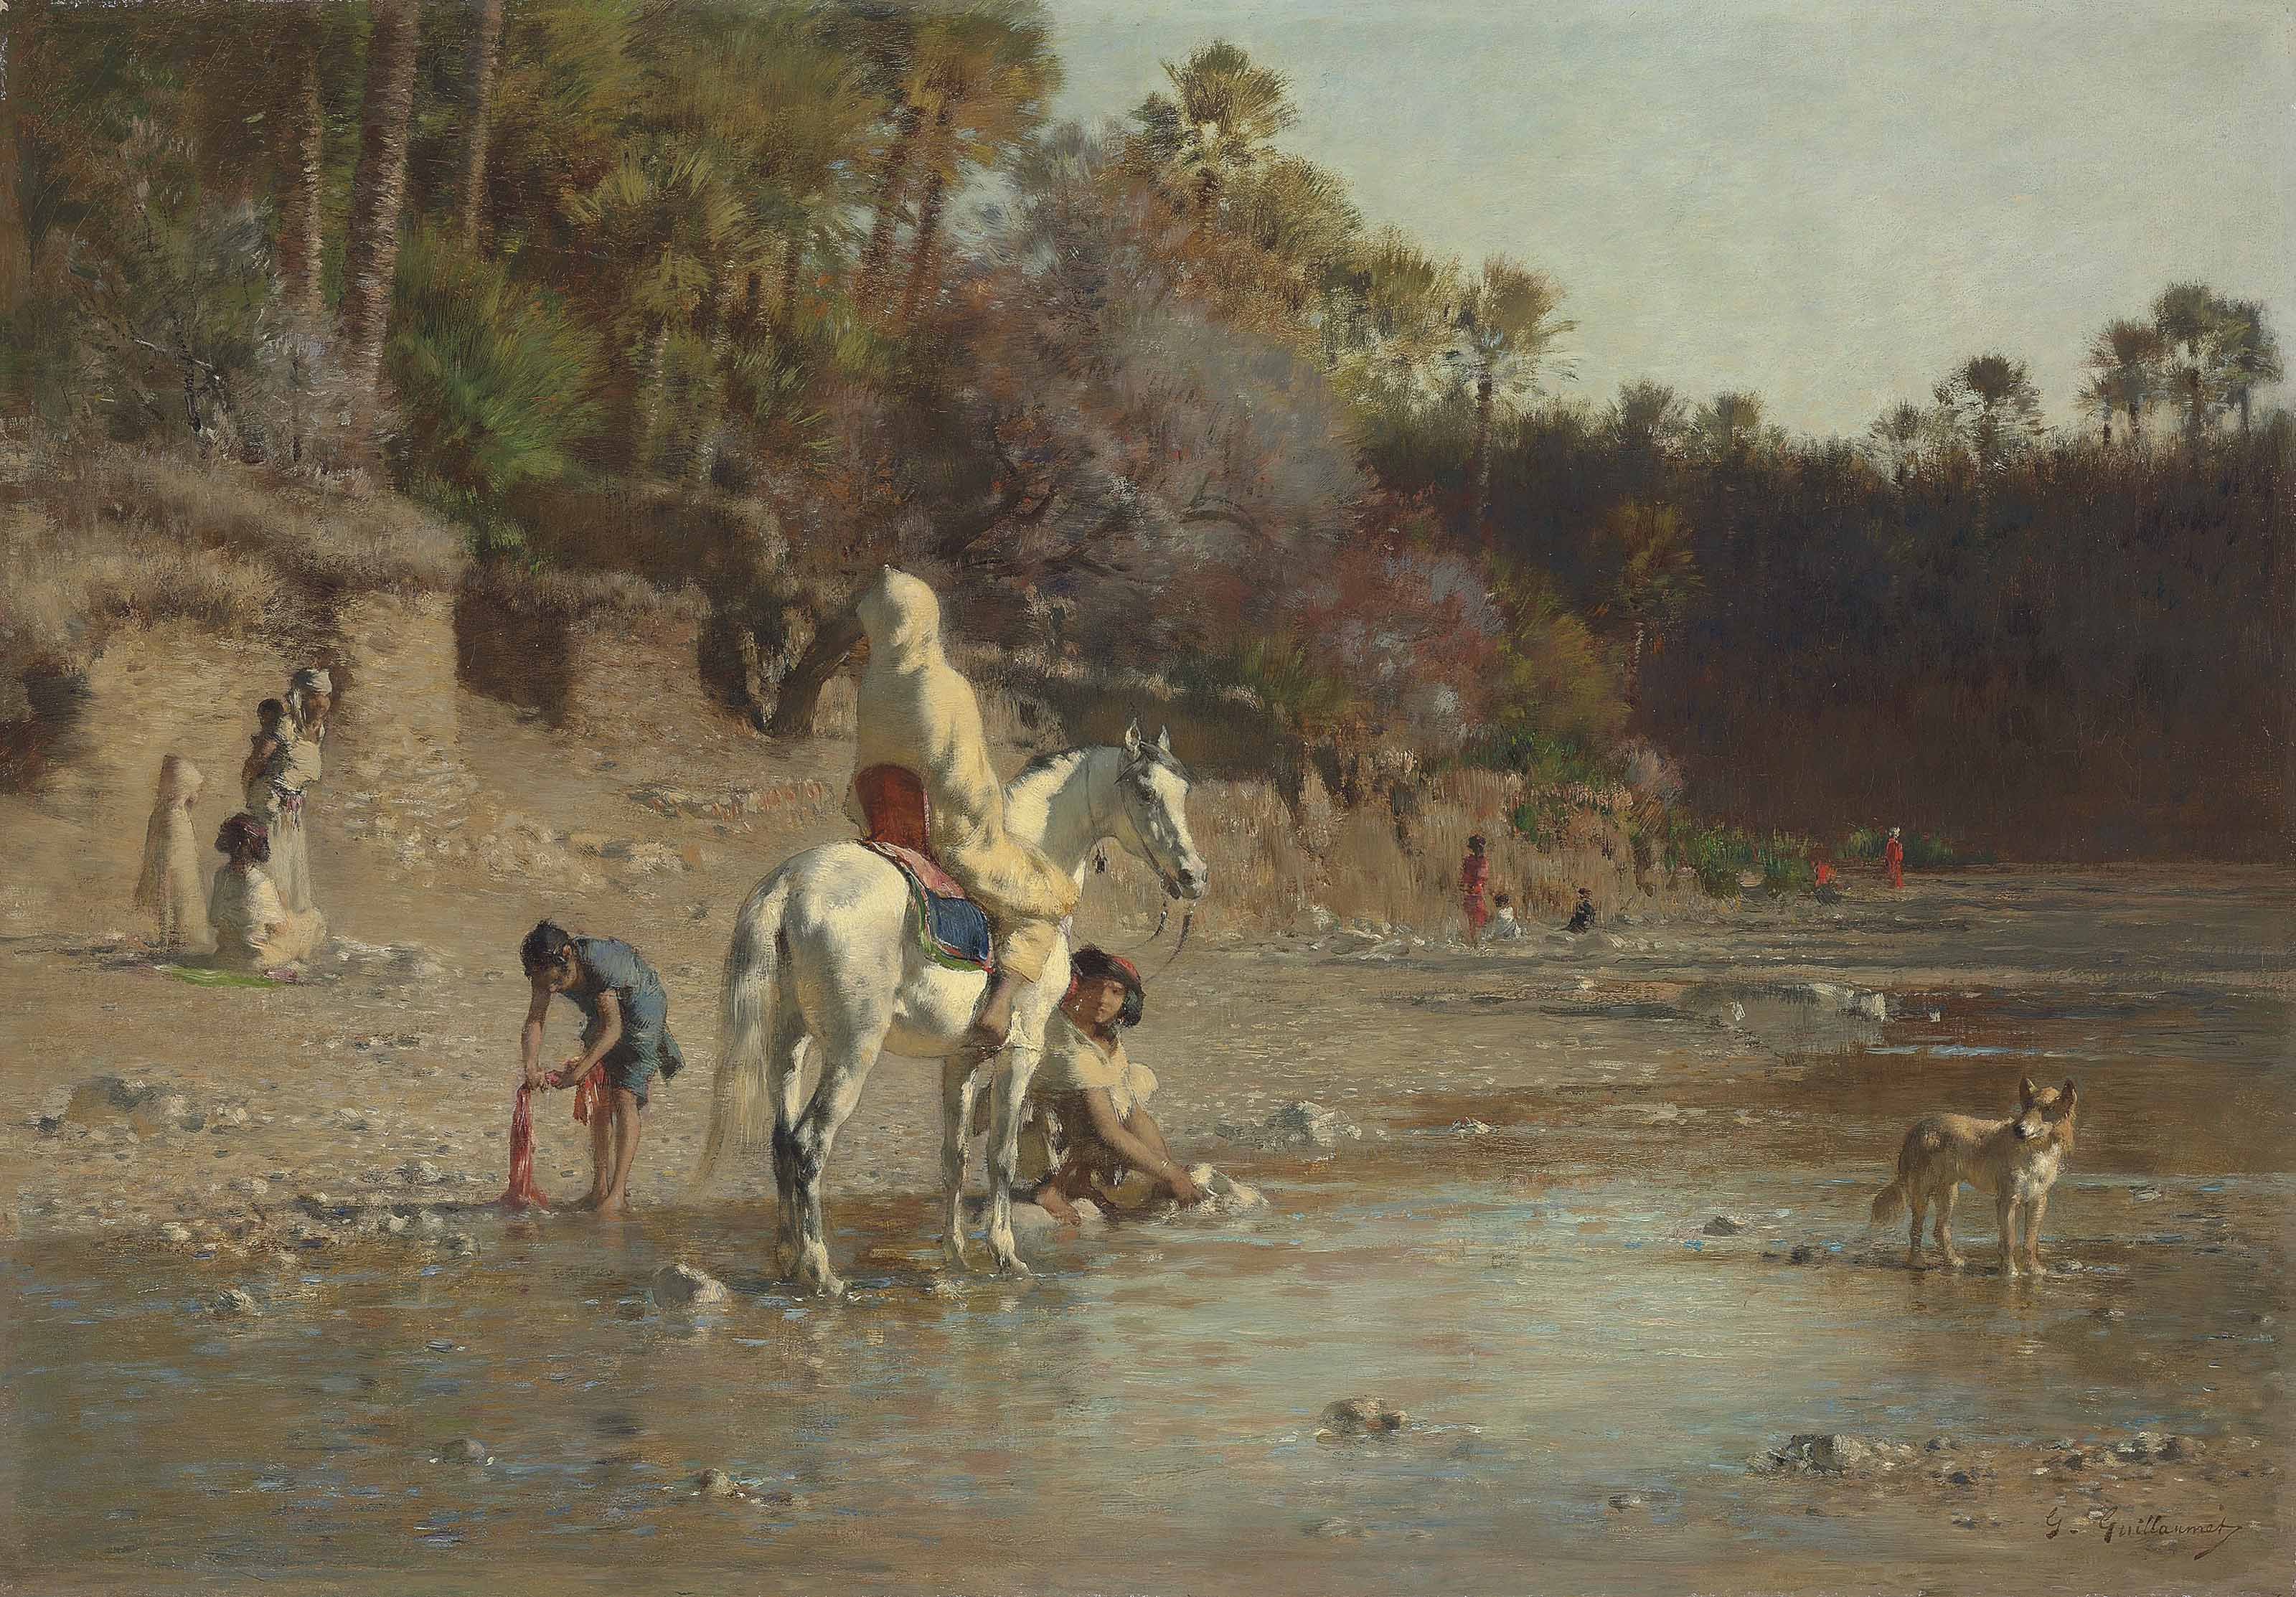 On the bank of the El Kantara river